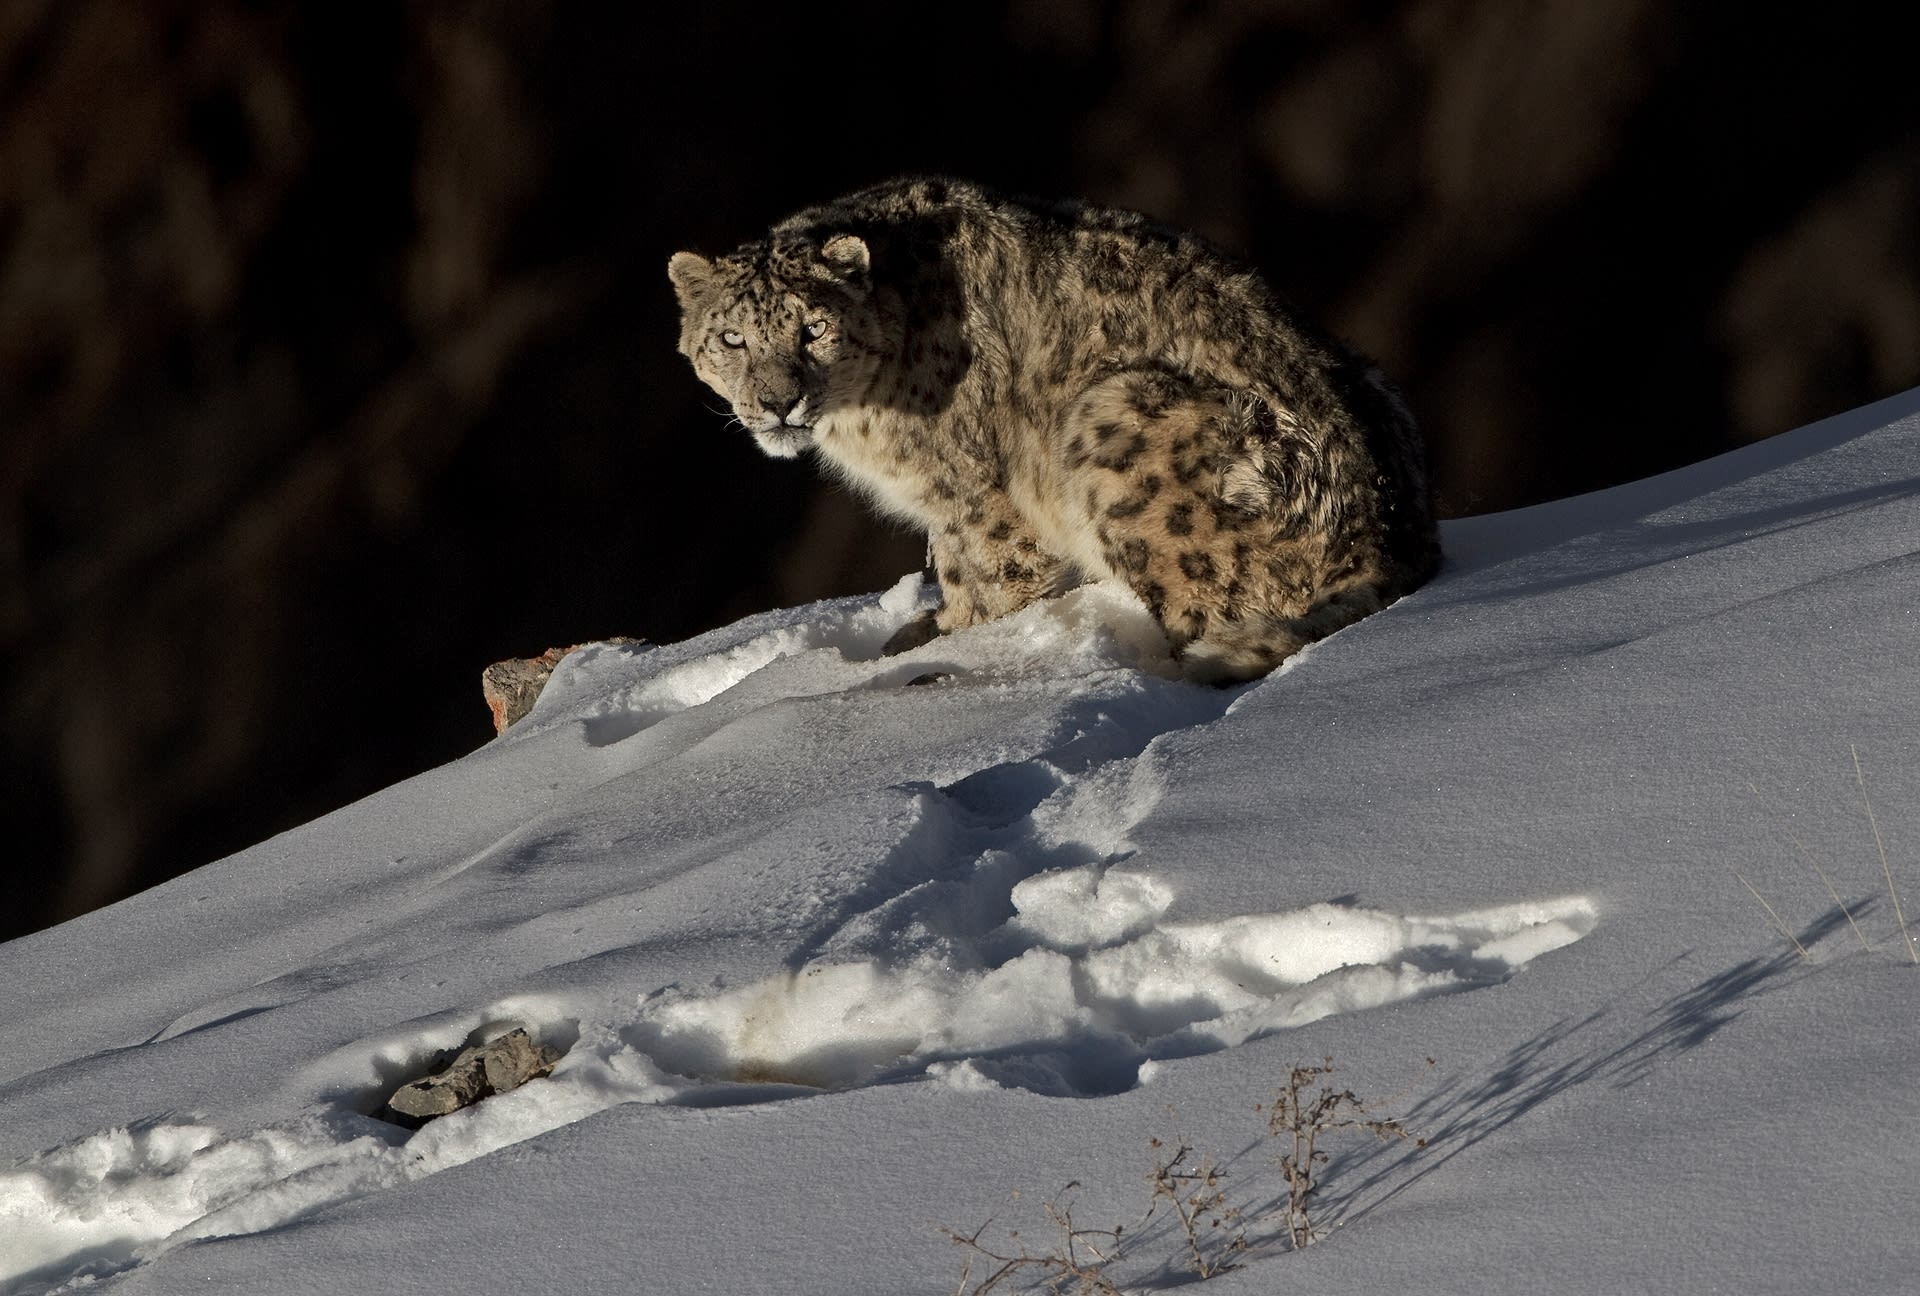 The snow leopard's underfur reaches a thickness of around 12 cm, affording it protection against the extreme cold in its harsh mountain habitat.  </br>The snow leopard's ability to blend with its surroundings and to disappear at will earns it the title 'Grey Ghost of the Mountains' or 'Ghost Cat'. Photos: Dhritiman Mukherjee